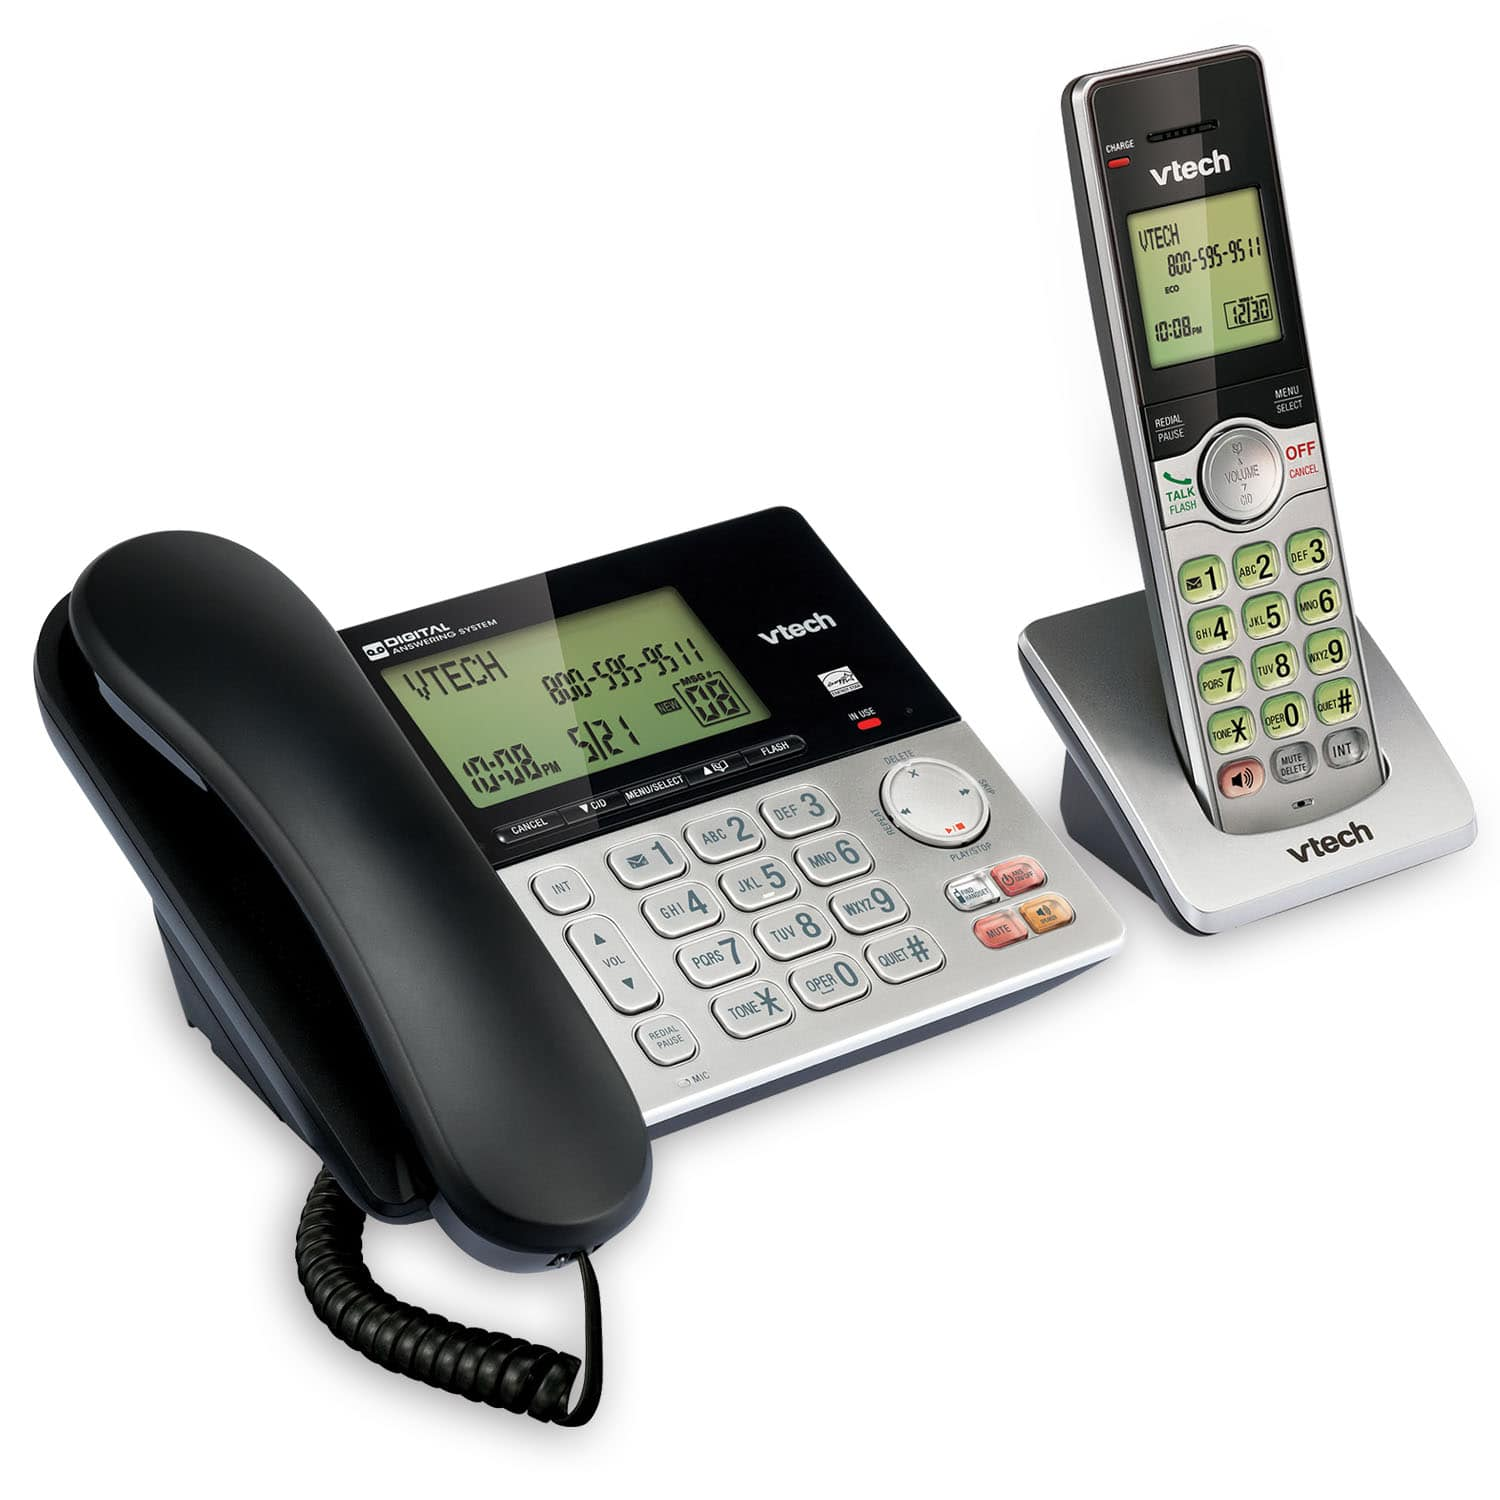 Vtech 2 Line Cordless Phone With Answering Machine Manual Manual Guide